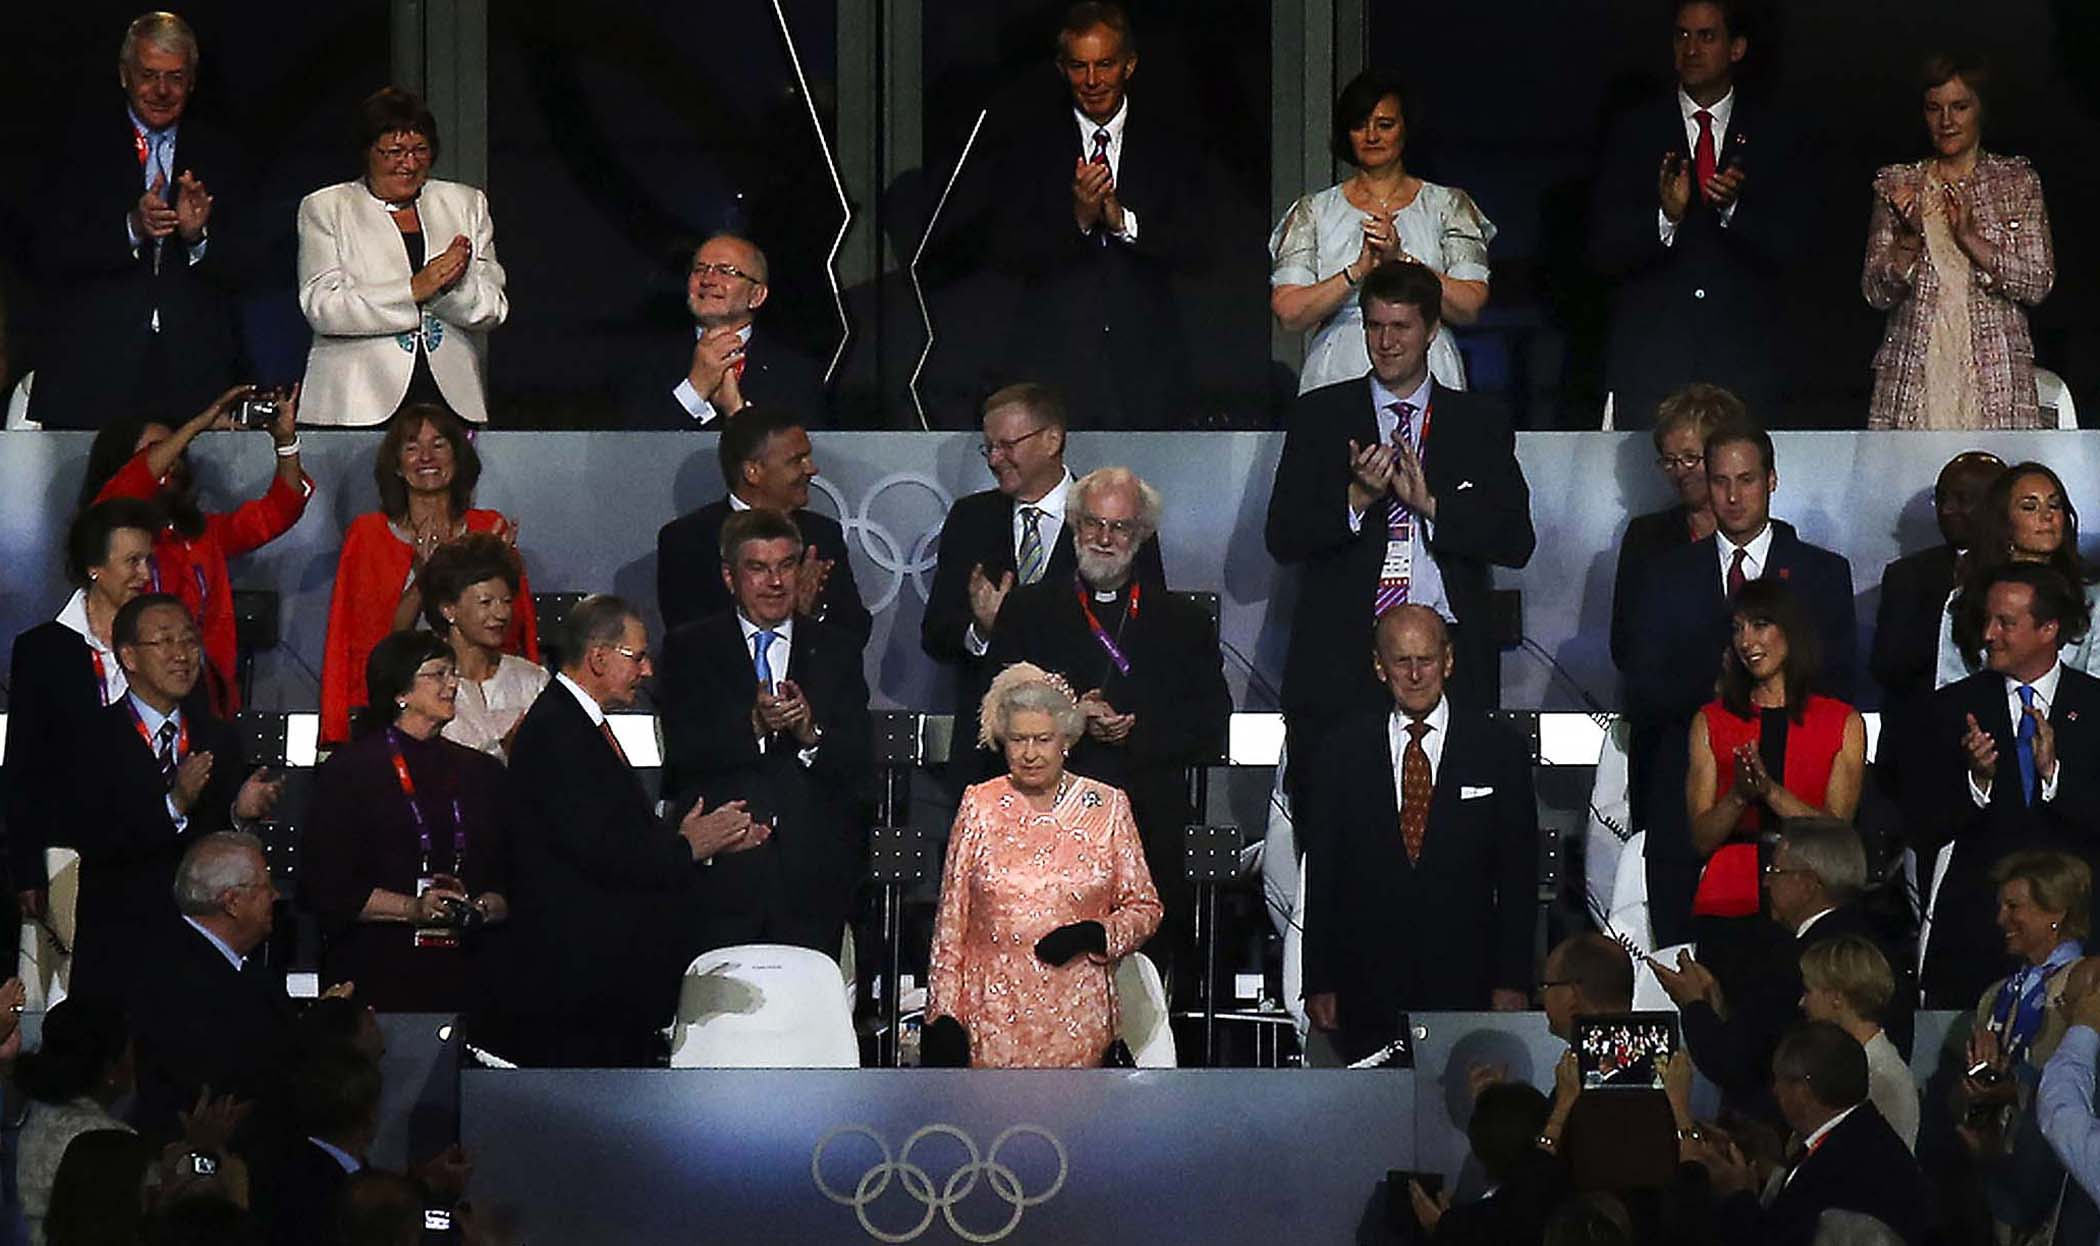 Britain's Queen Elizabeth II, center, during the opening ceremony of the 2012 Summer Olympic Games in London.